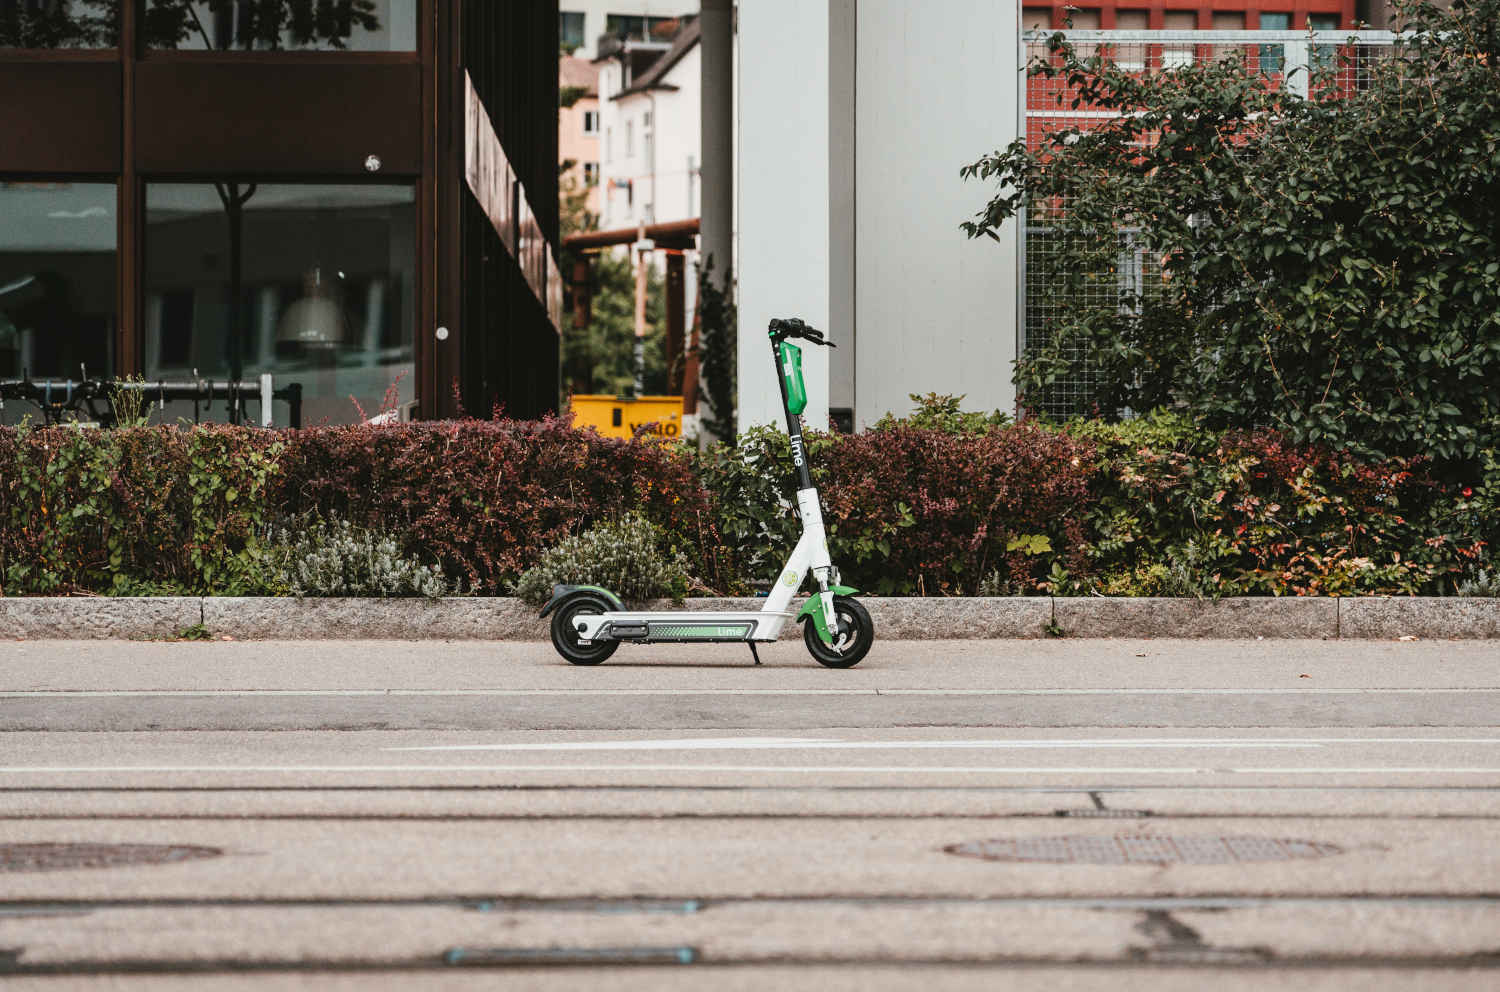 A Lime rental e-scooter stands alone on a city street.